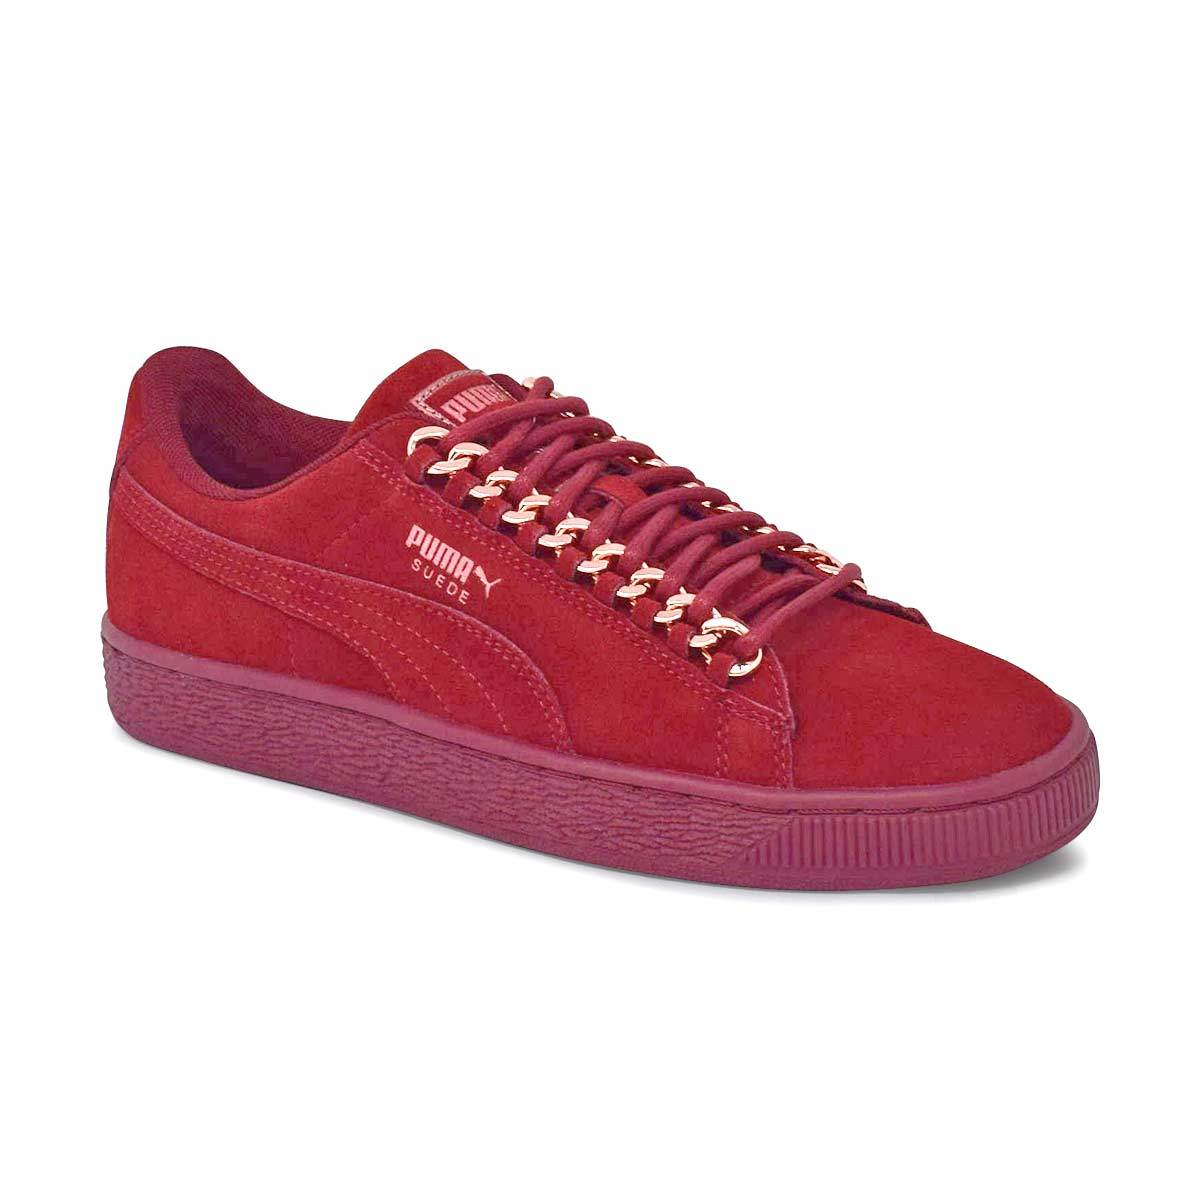 Women's Suede Classic Chain Red